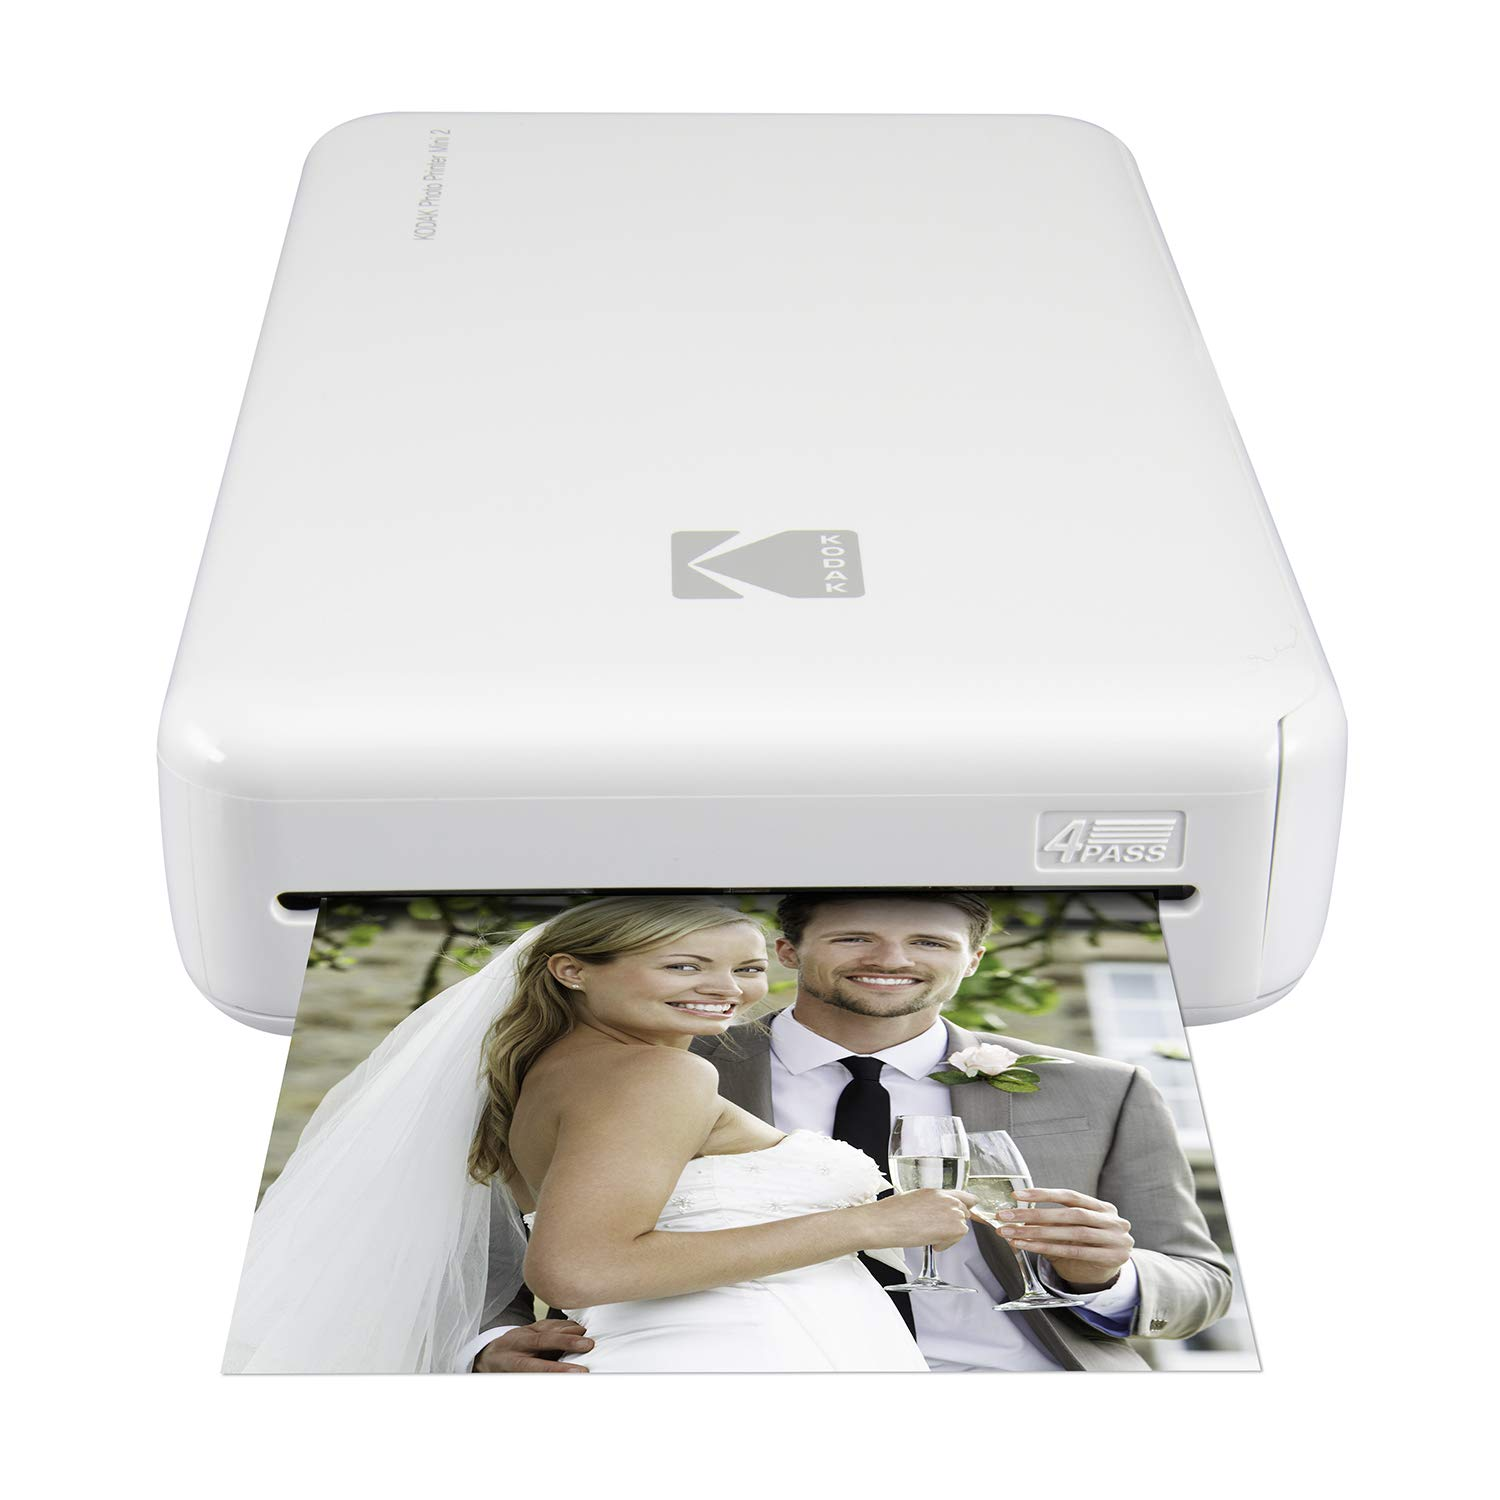 Kodak Mini 2 HD Wireless Portable Mobile Instant Photo Printer, Print Social Media Photos, Premium Quality Full Color Prints - Compatible w/iOS & Android Devices (White) by KODAK